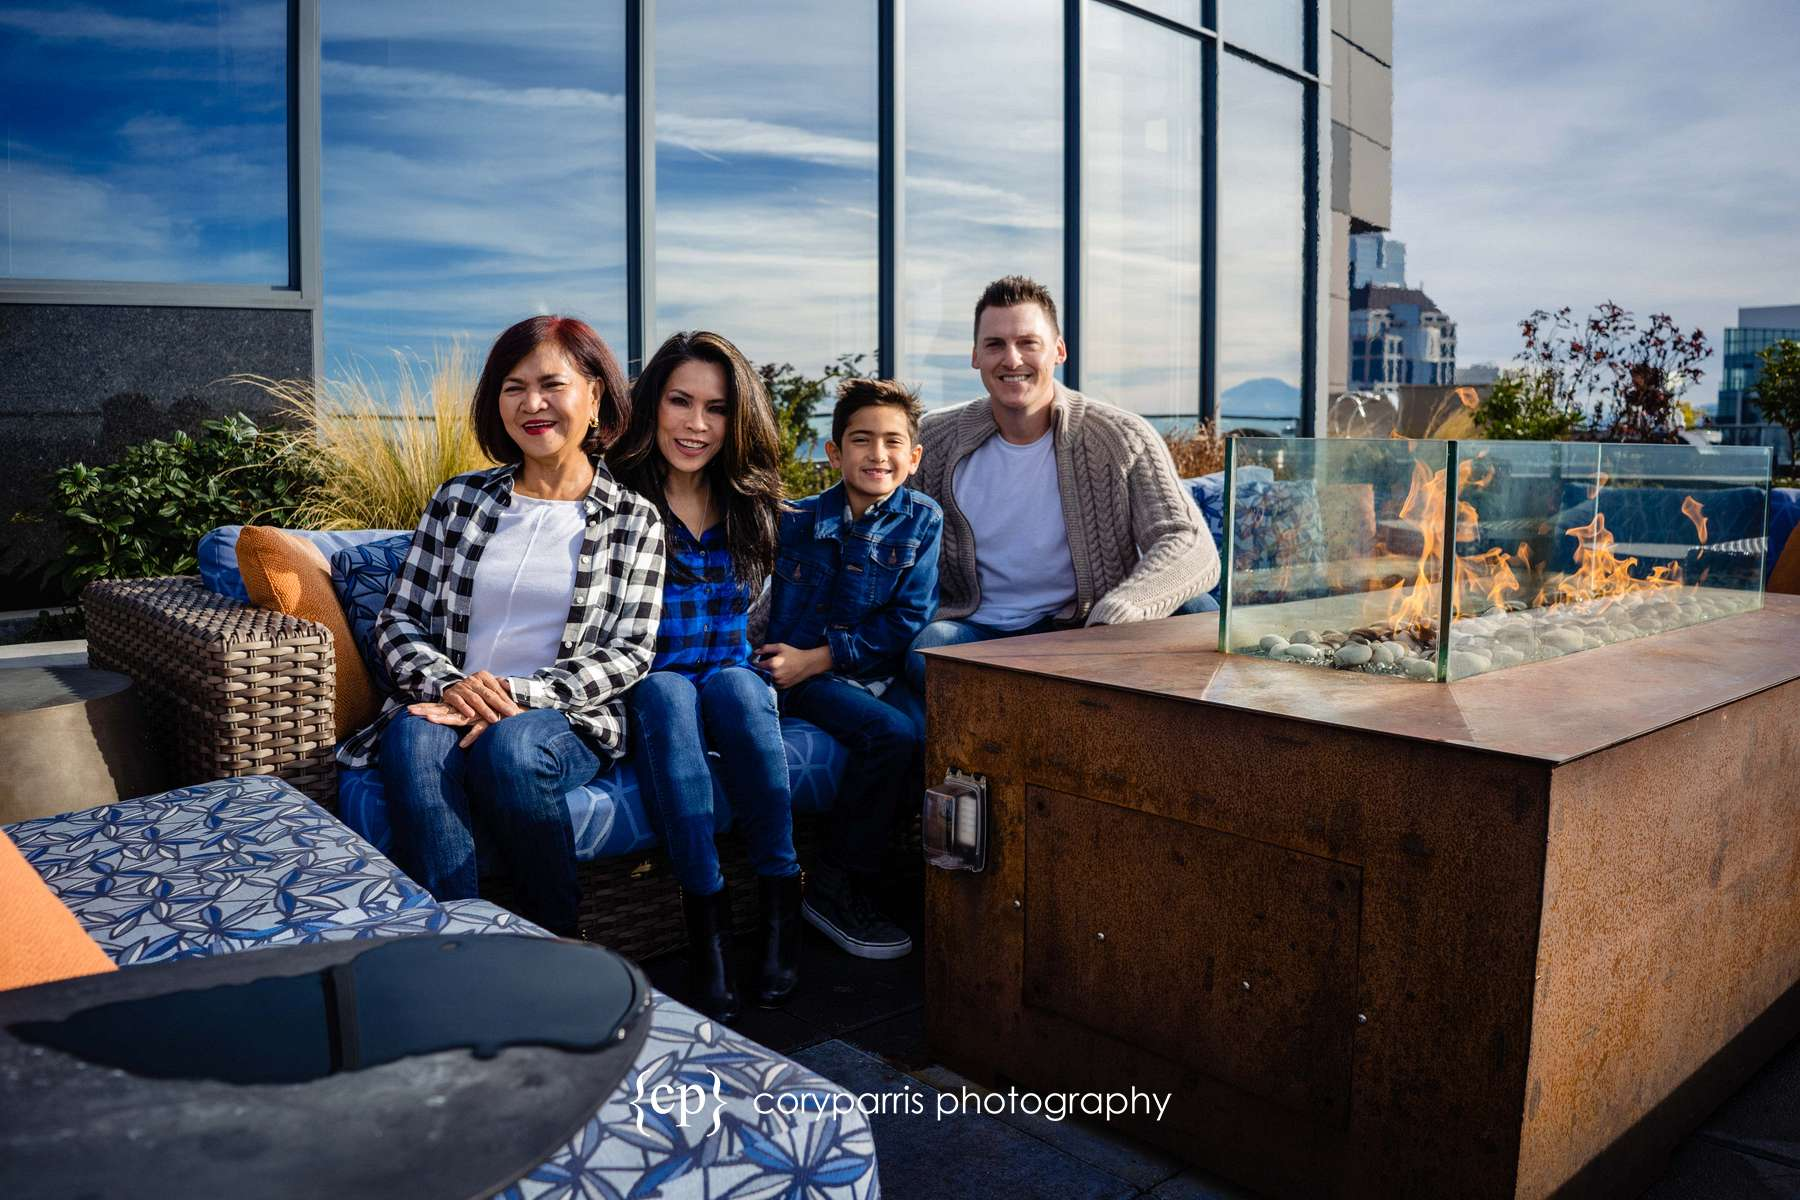 014-seattle-family-portraits-Pike-Place.jpg